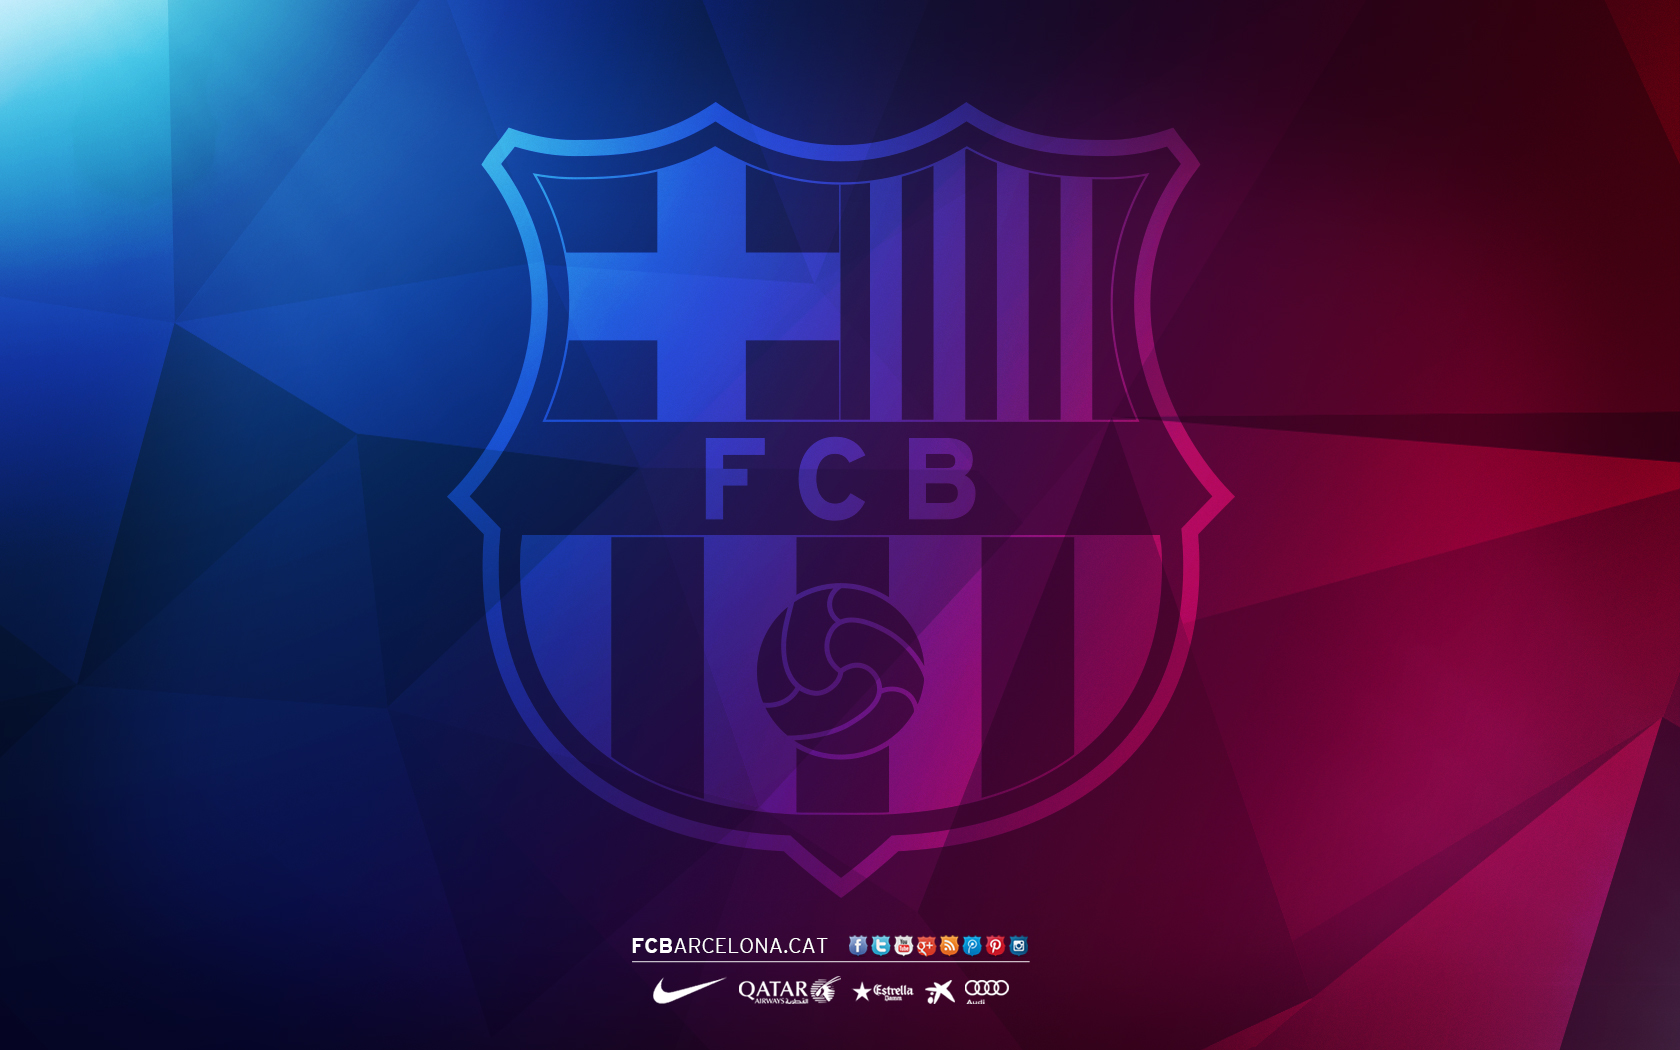 Fcbarcelona fondos de pantalla fcbarcelona for Fondo de pantalla wonderful